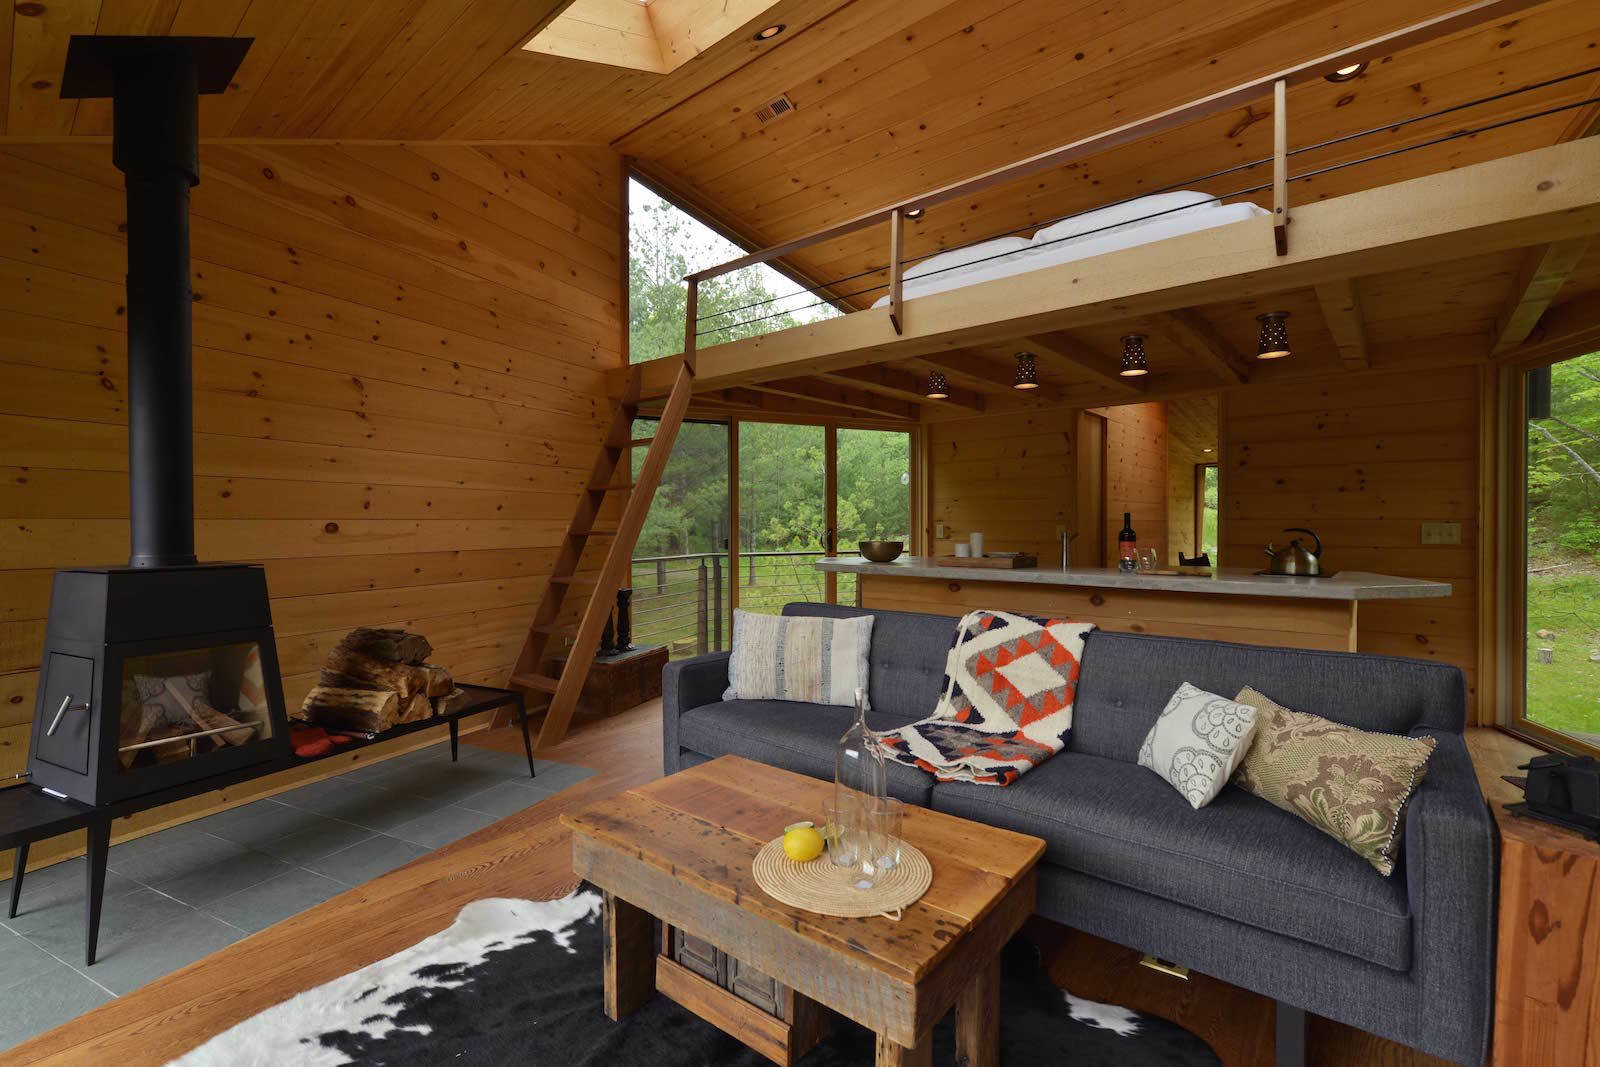 Living Room, Sofa, Recessed Lighting, Ceiling Lighting, Coffee Tables, End Tables, Medium Hardwood Floor, and Wood Burning Fireplace  Photo 4 of 11 in Sleep in This Romantic Tree House Just Outside NYC